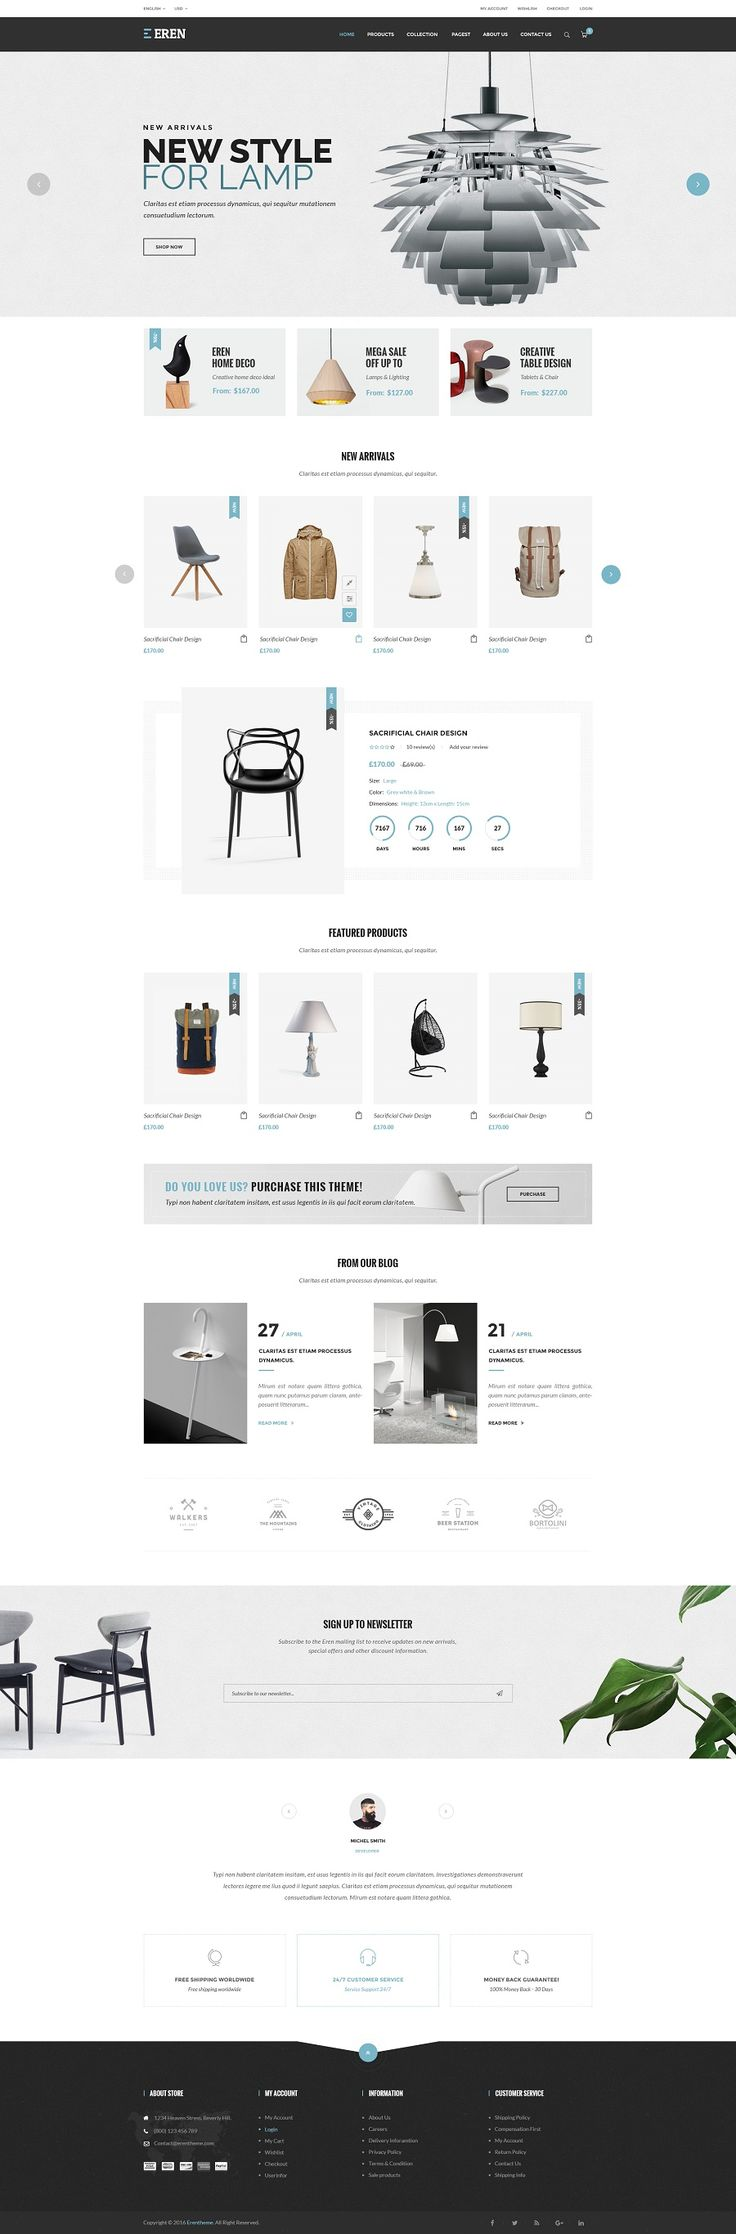 Best Ecommerce Themes #WEBDESIGN